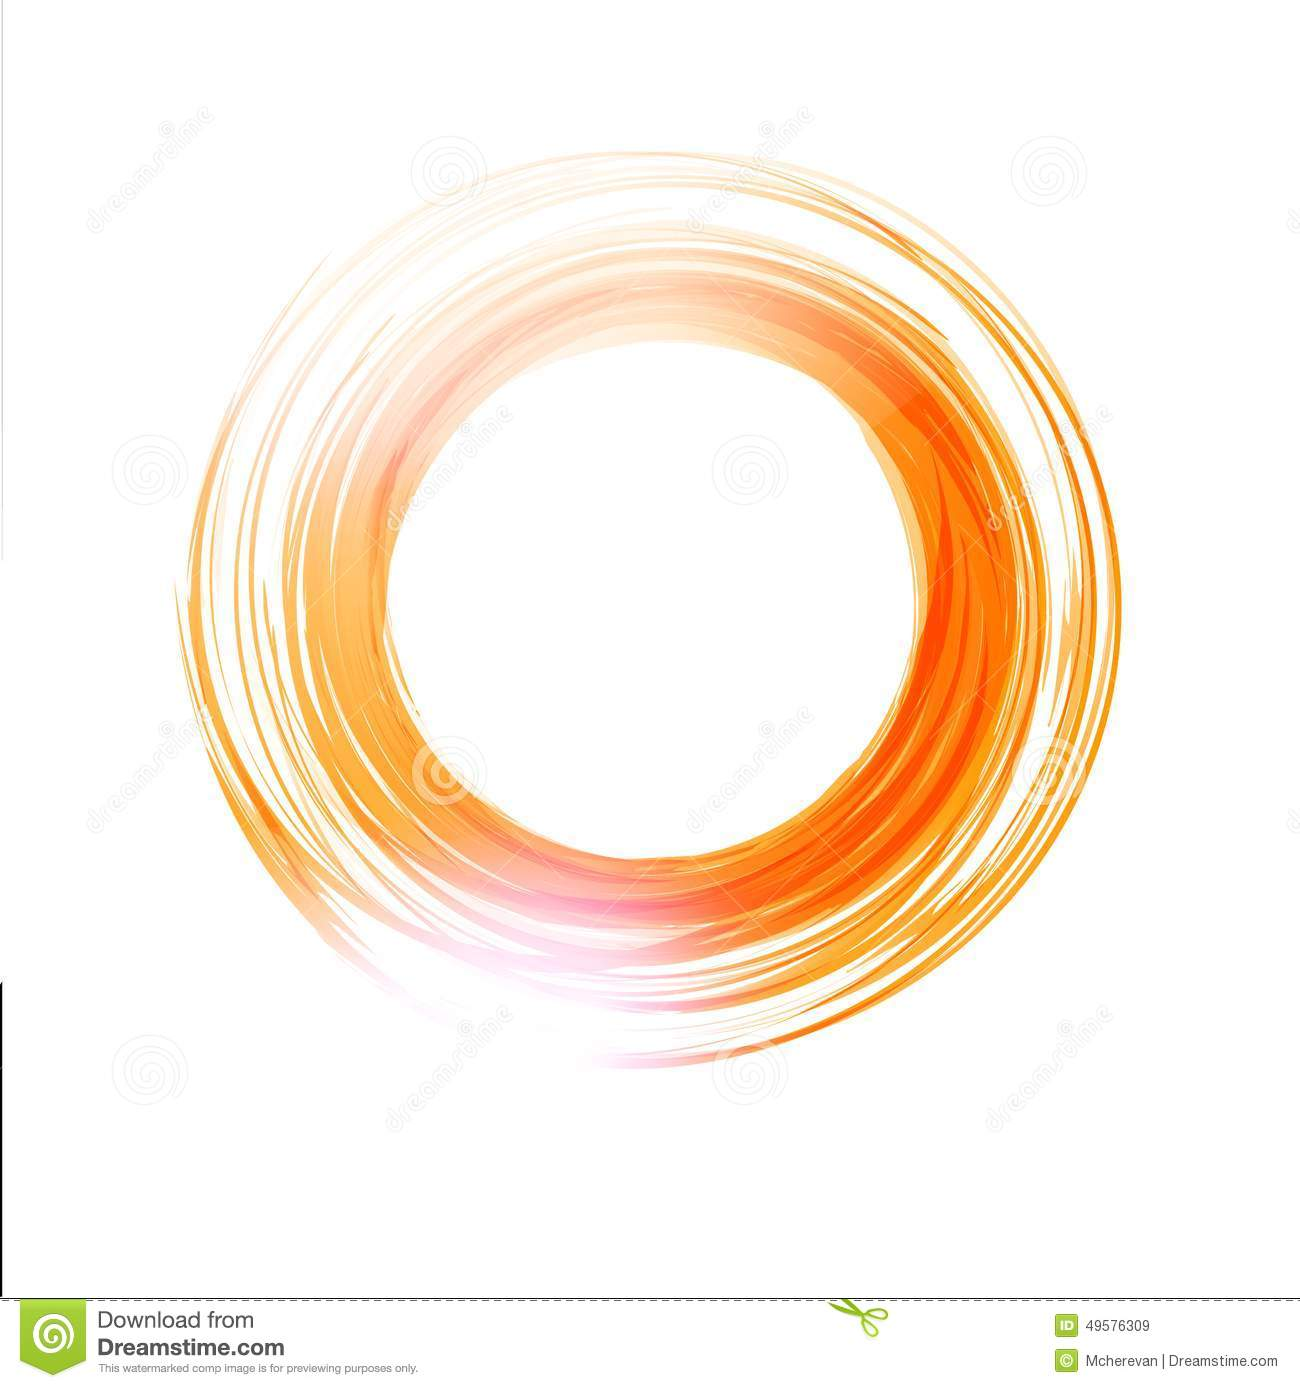 What Is Orange Ring For On Pc